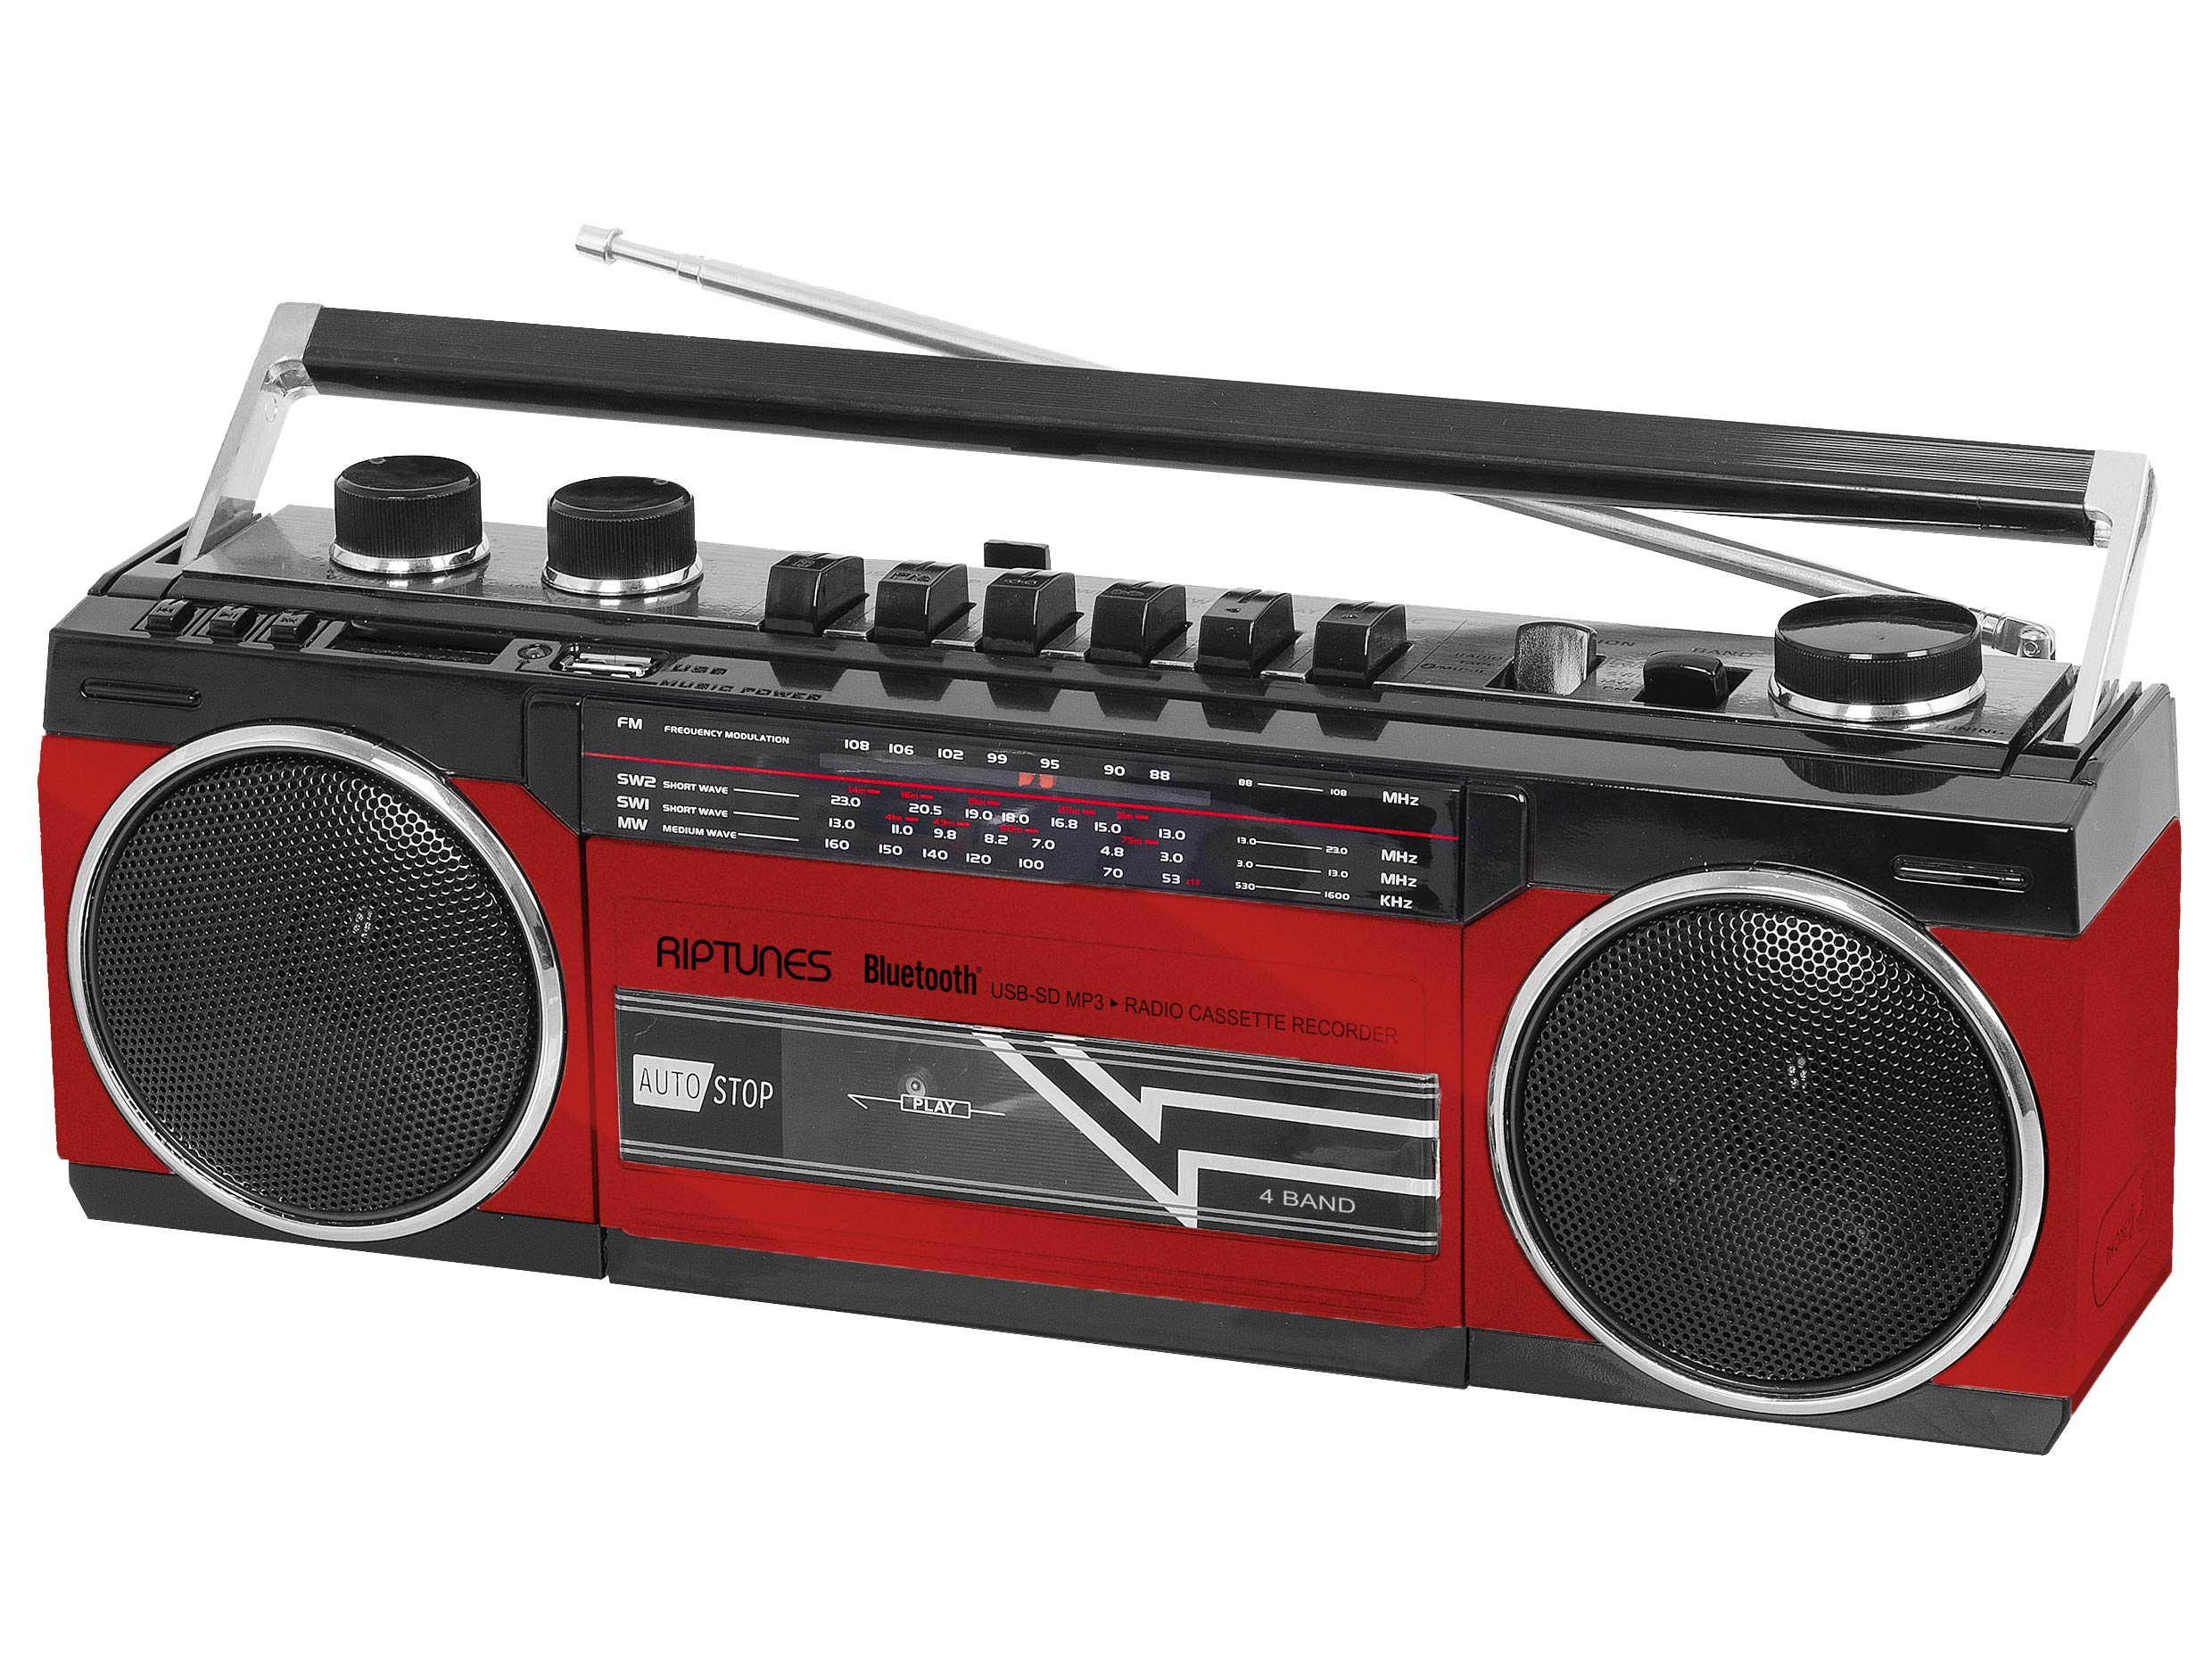 Riptunes Cassette Boombox, Retro Blueooth Boombox, Cassette Player and Recorder, AM/FM/SW-1-SW2 Radio-4-Band Radio, USB, and SD, Headphone Jack, RED